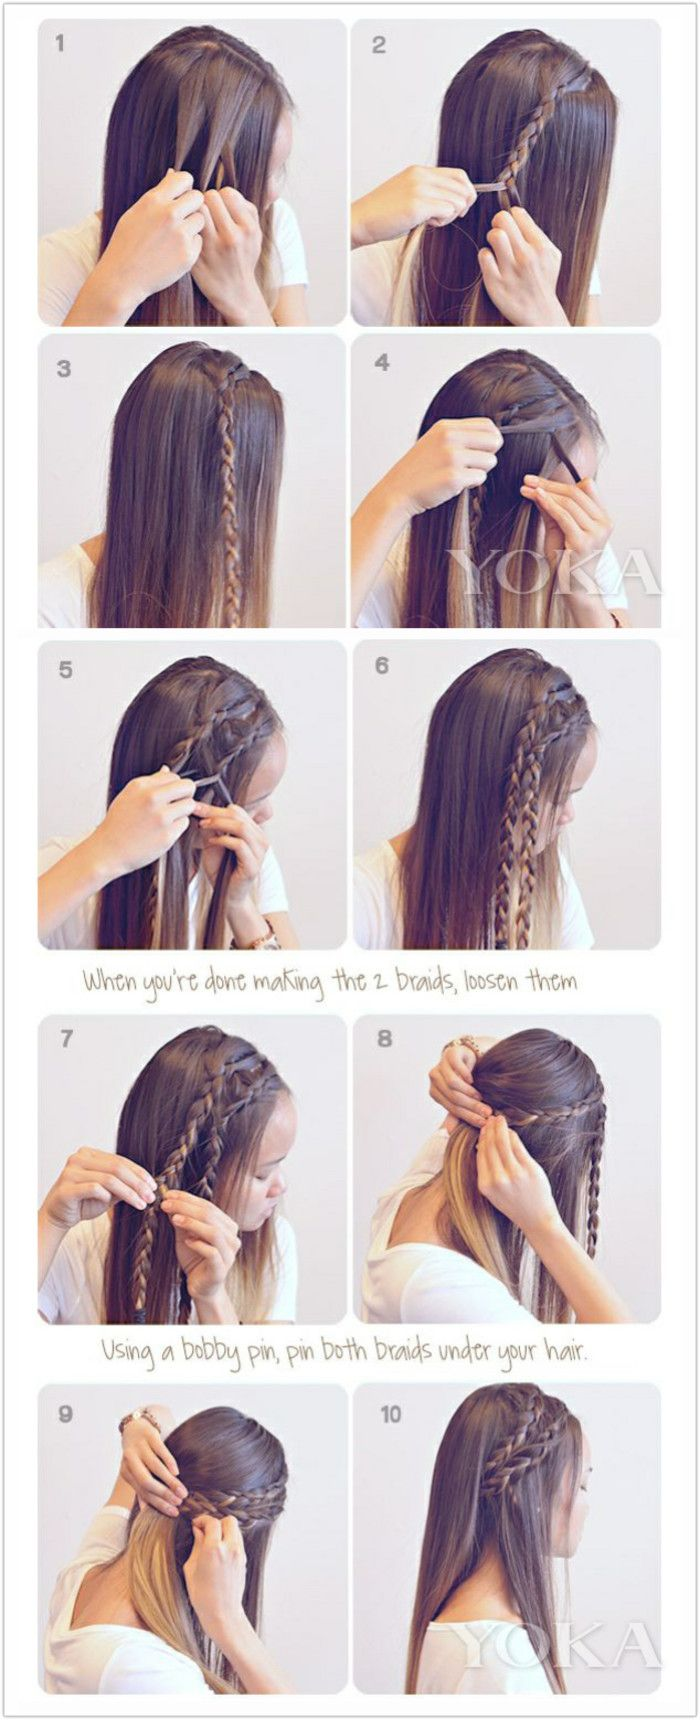 Simple Braid Hair Style Braid Idea Hair Braid Diy Braided Hairdo Hair Styles